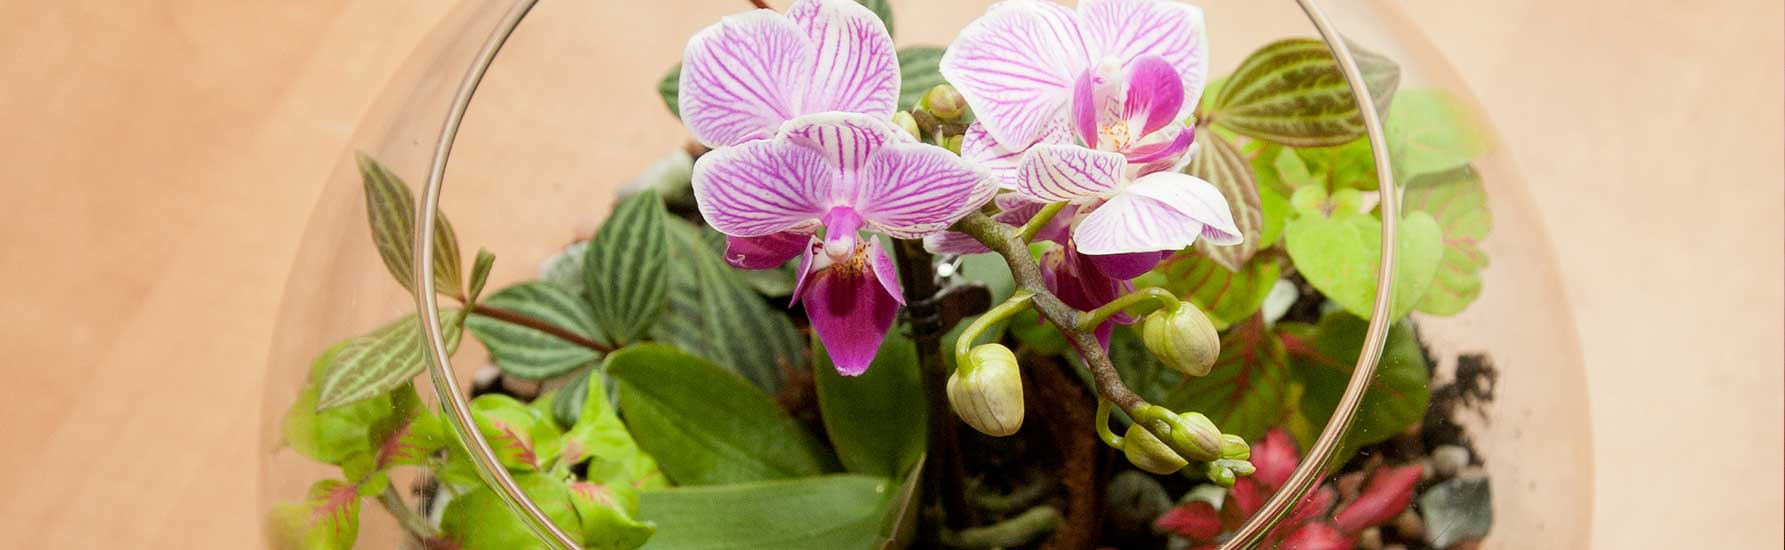 How To Grow Orchids In A Terrarium Orchidplantcare Info